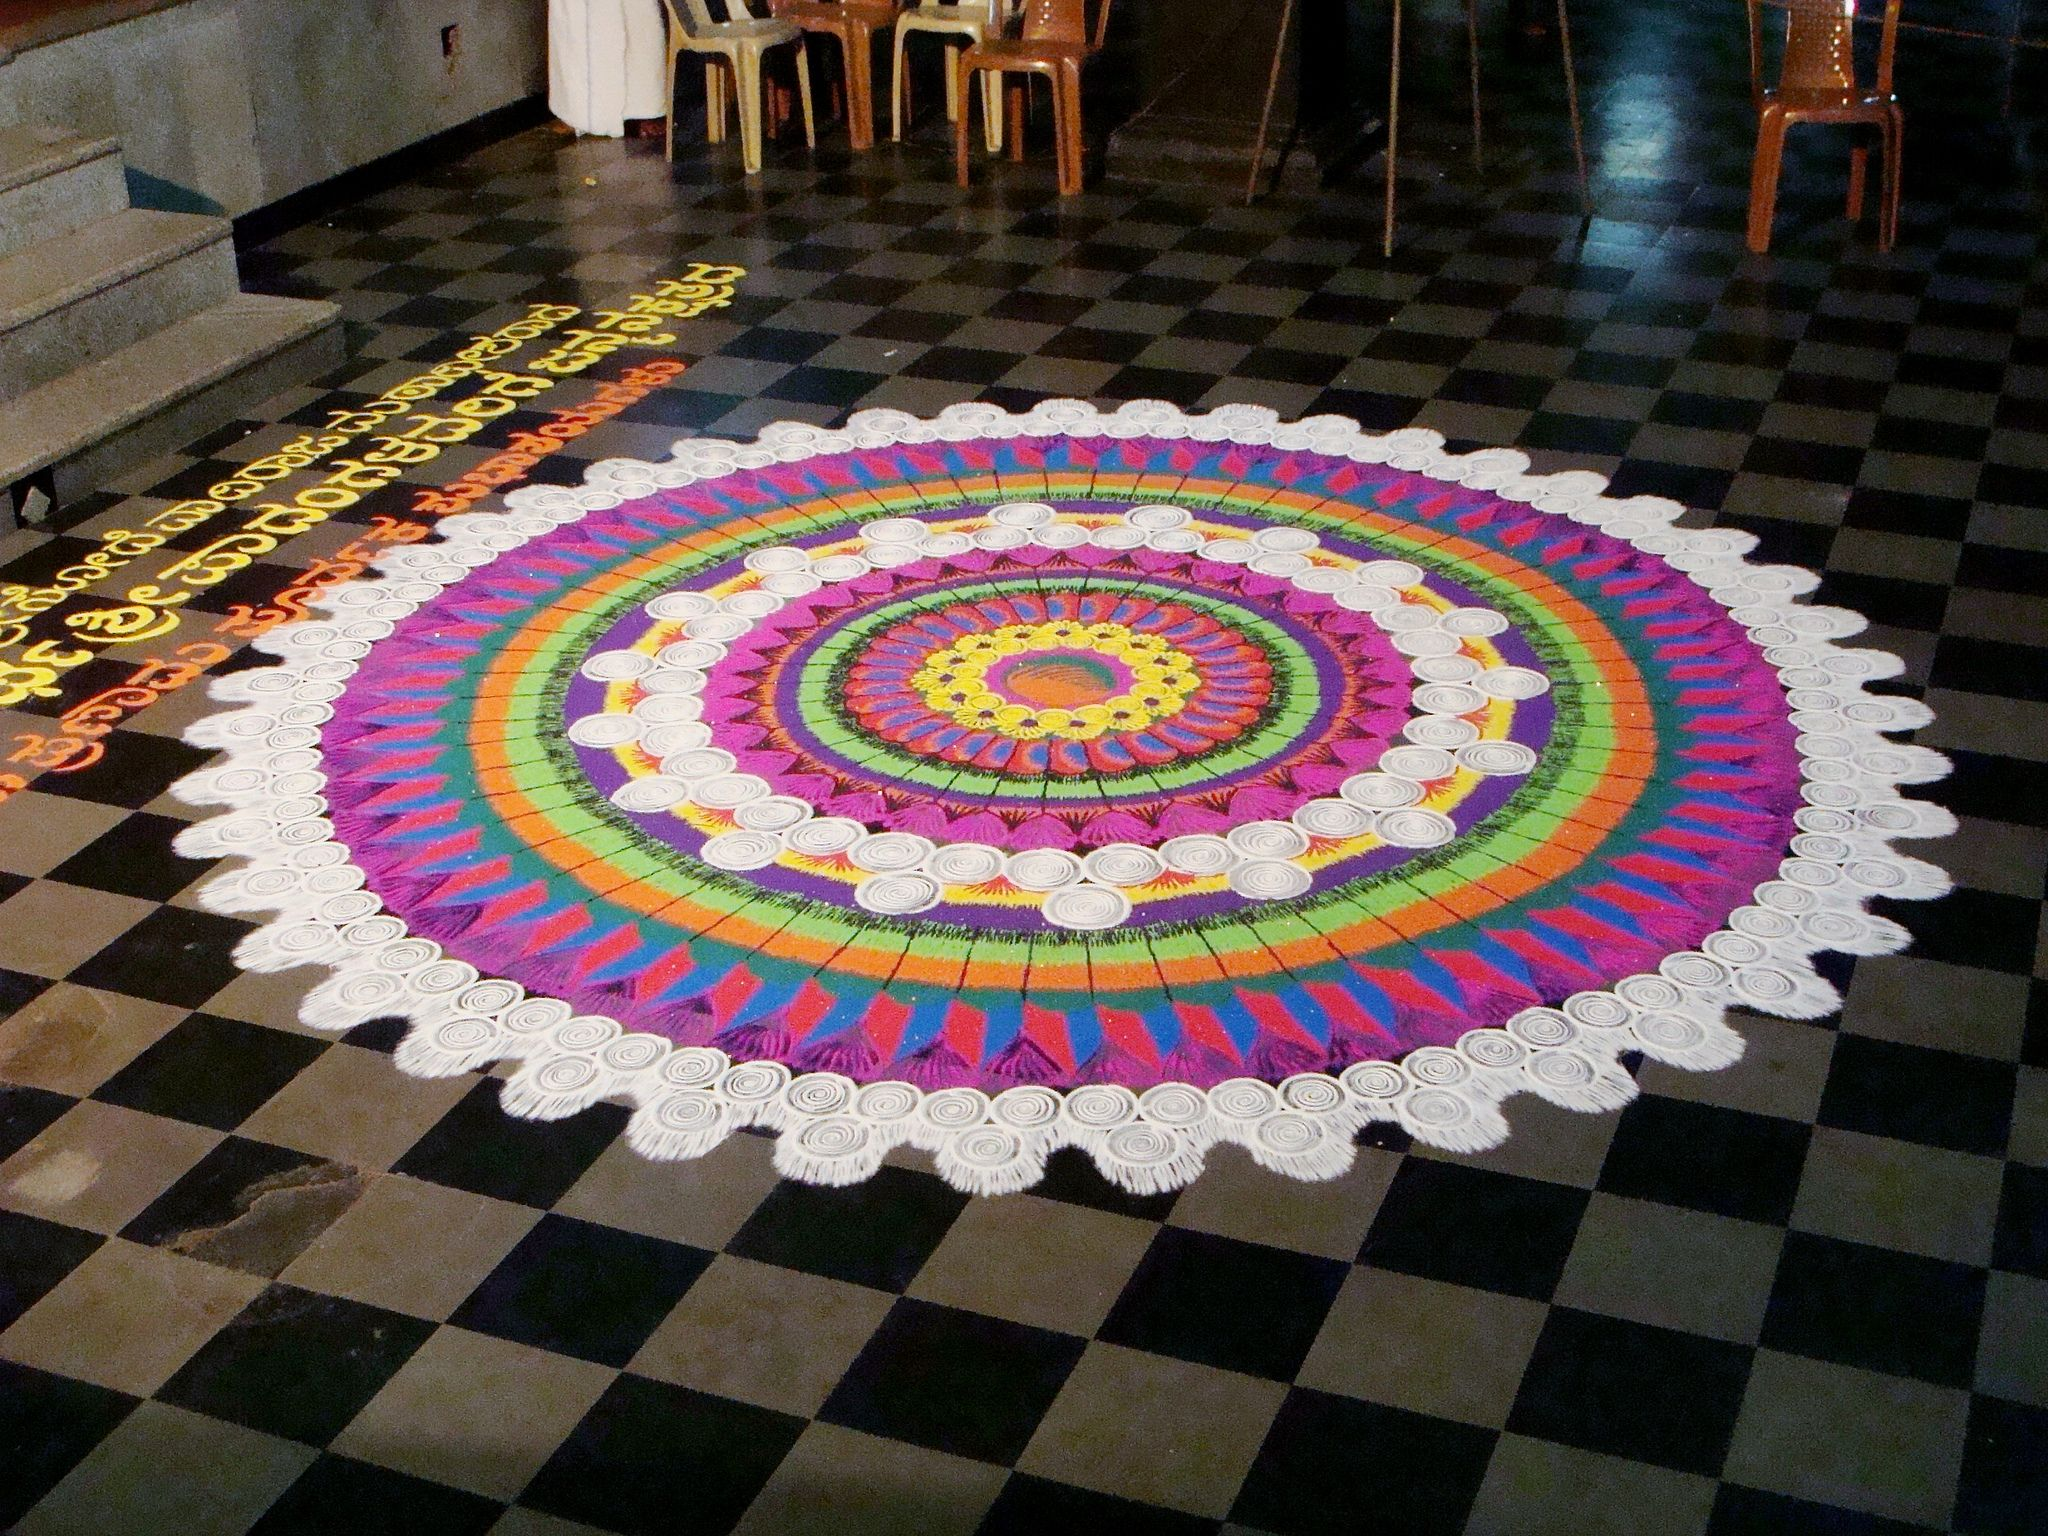 Rangoli at Udupi Krishna temple (1) di 2019 | Rangoli art